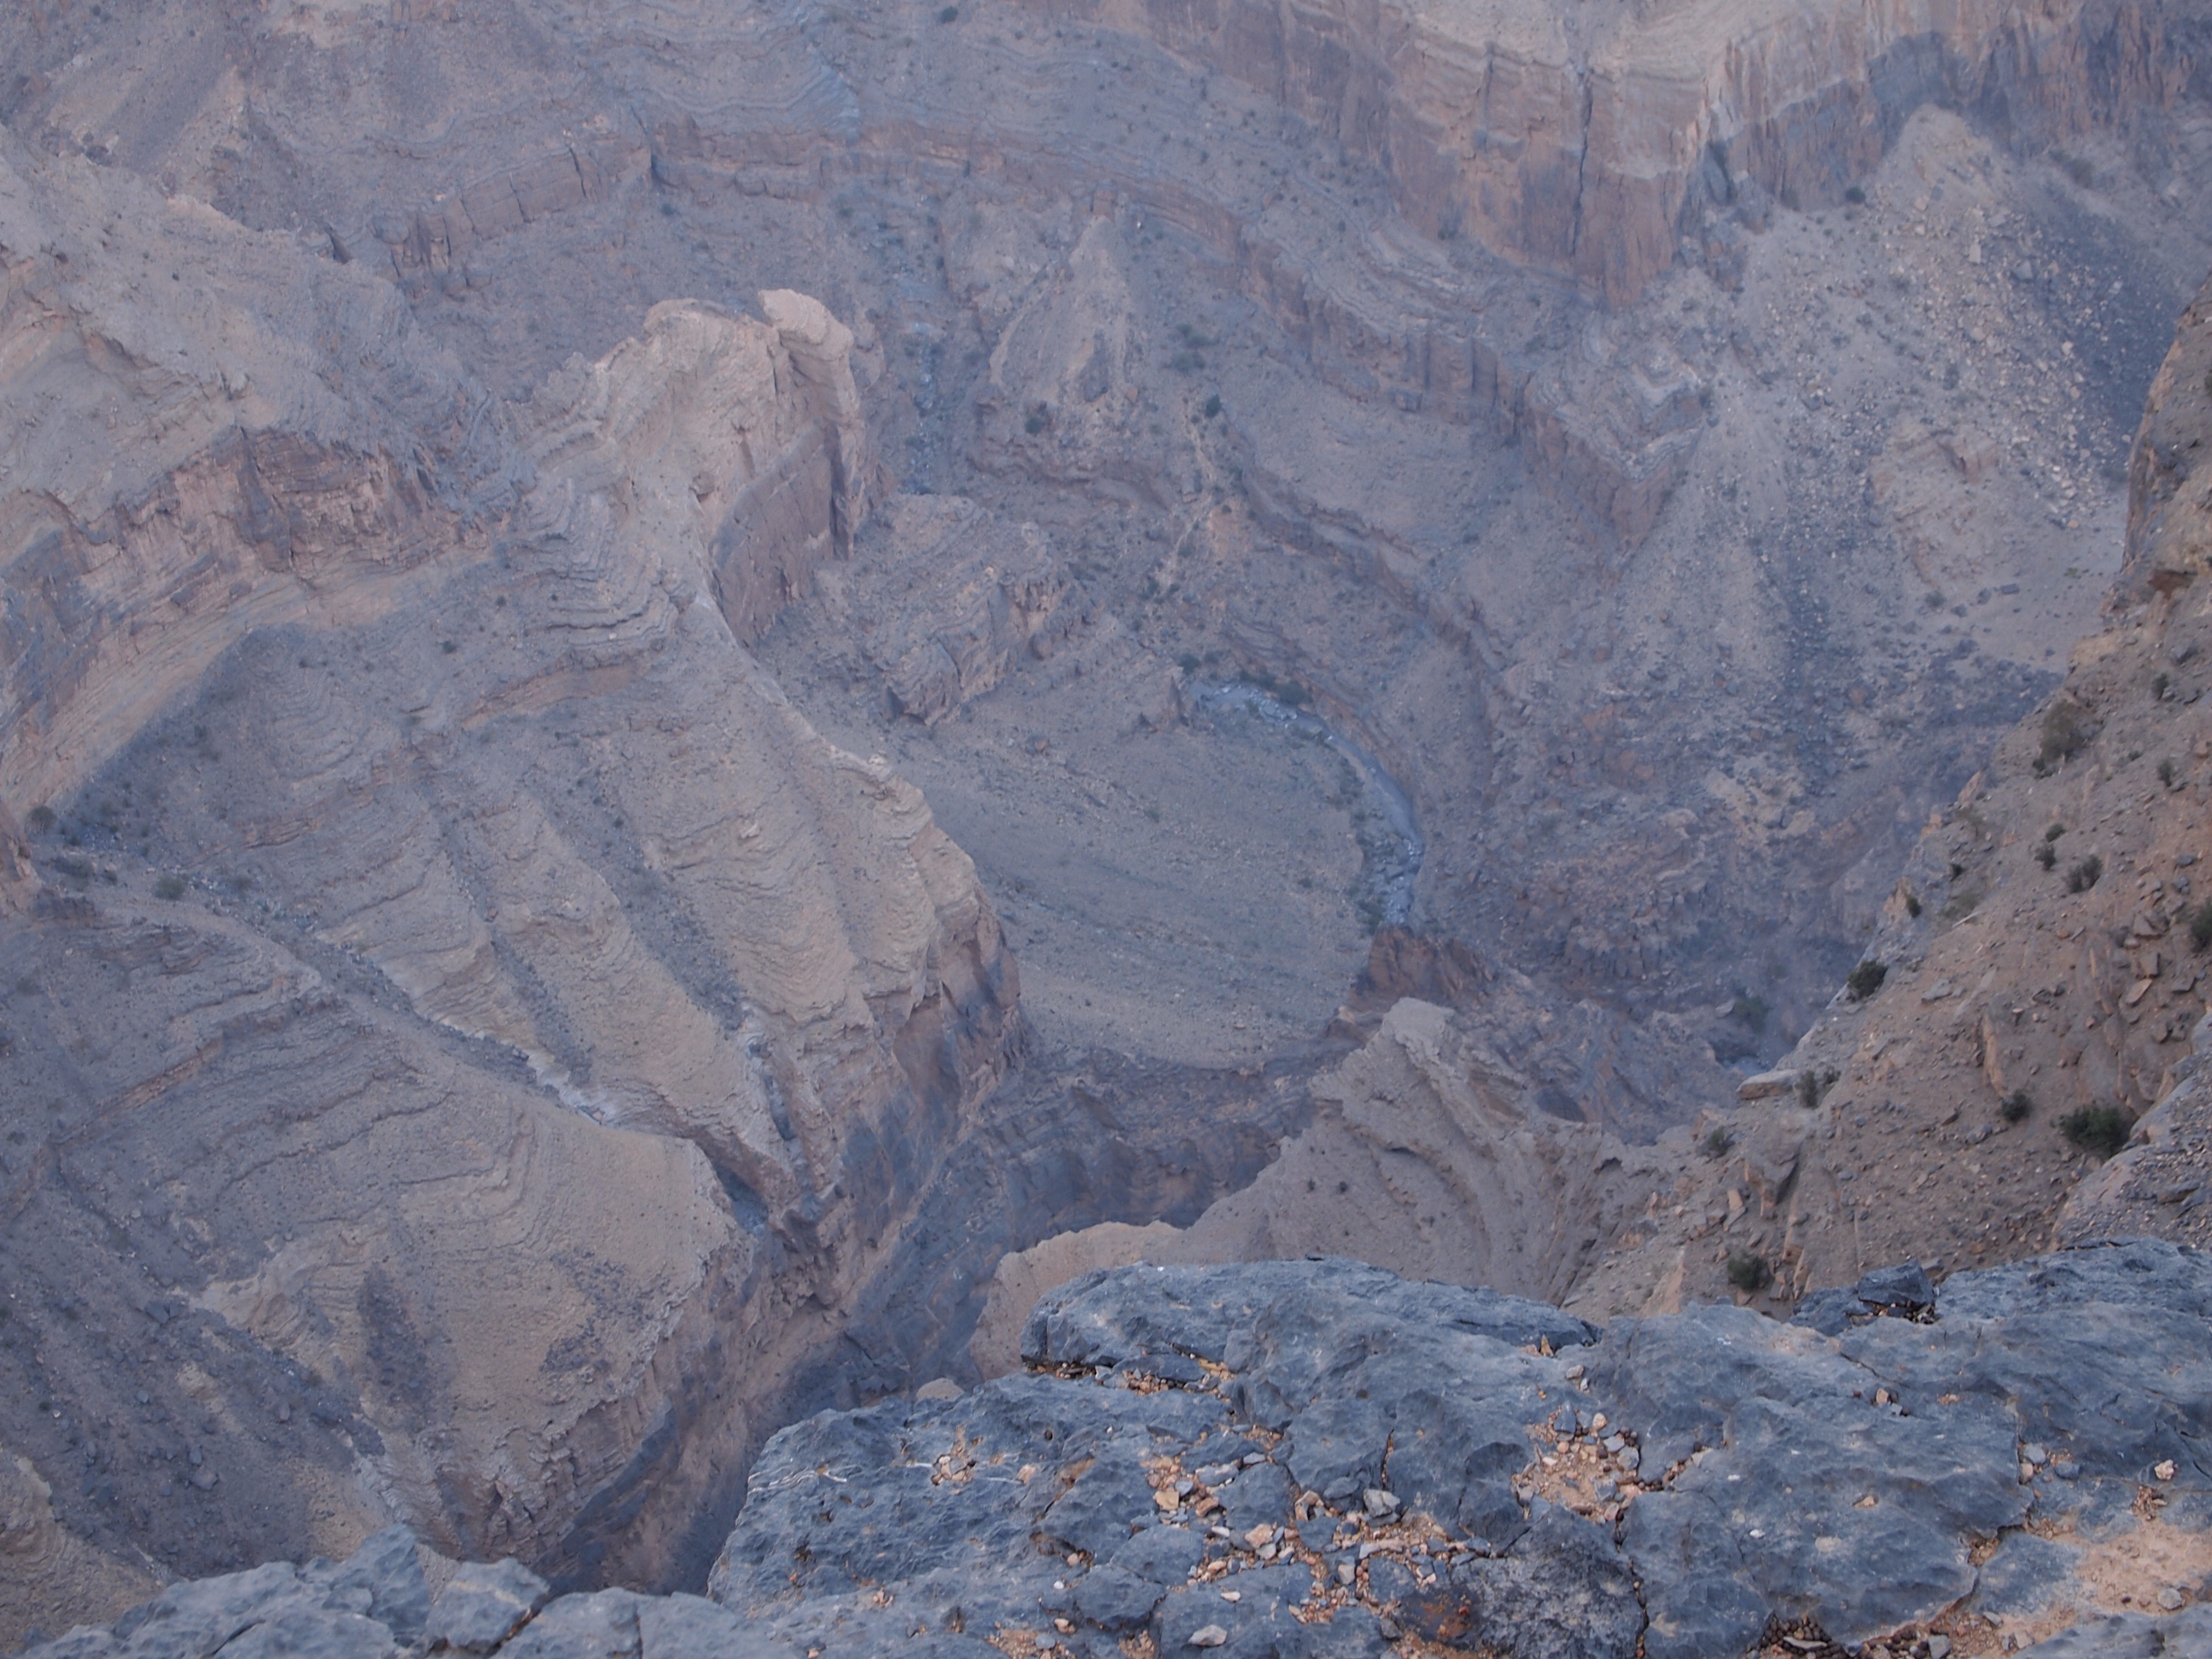 grand gorge middle eastern singles Audley travel specialises in tailor-made holidays and private tours for discerning travellers seeking authentic experiences around the world.